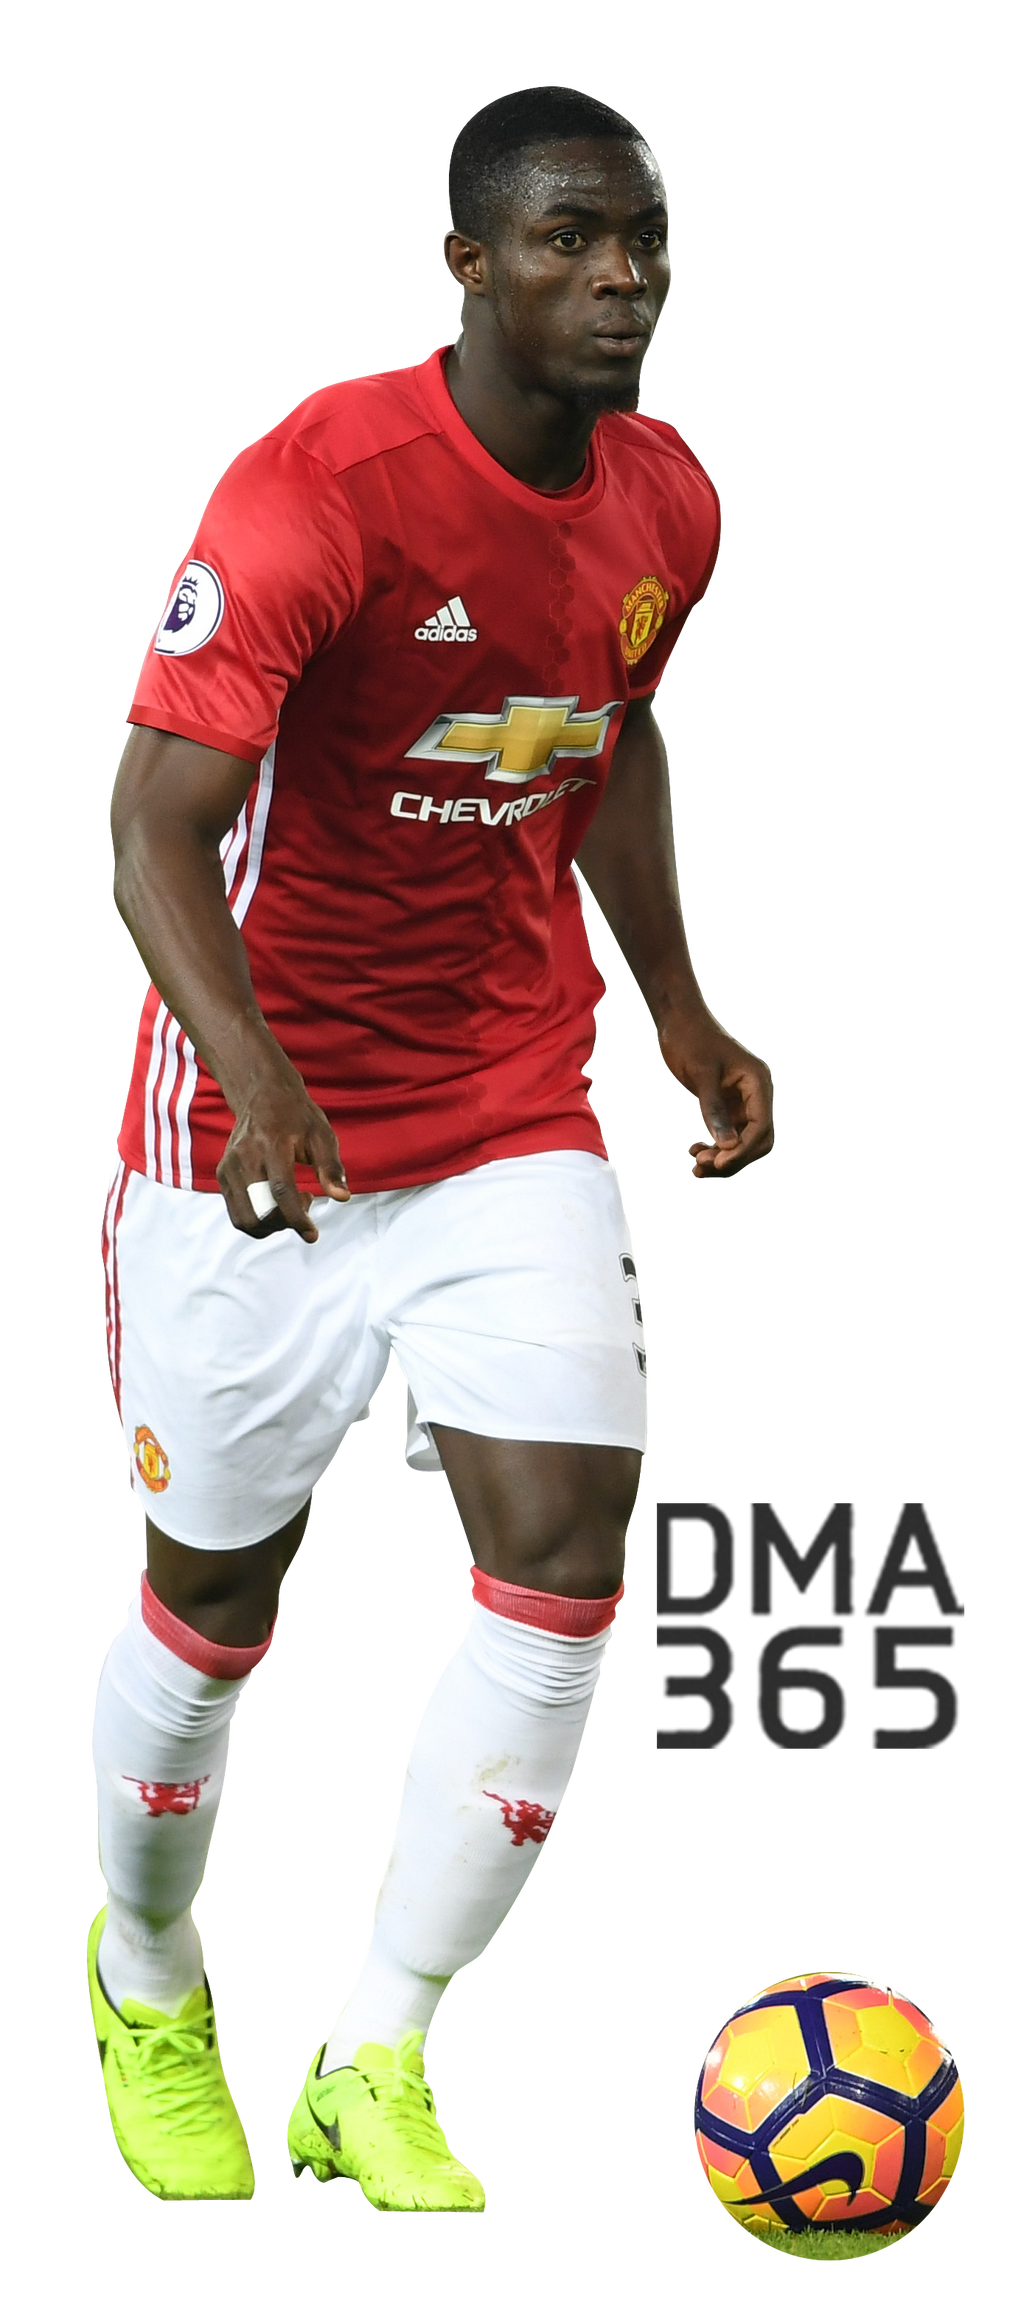 Eric Bailly by dma365 on DeviantArt